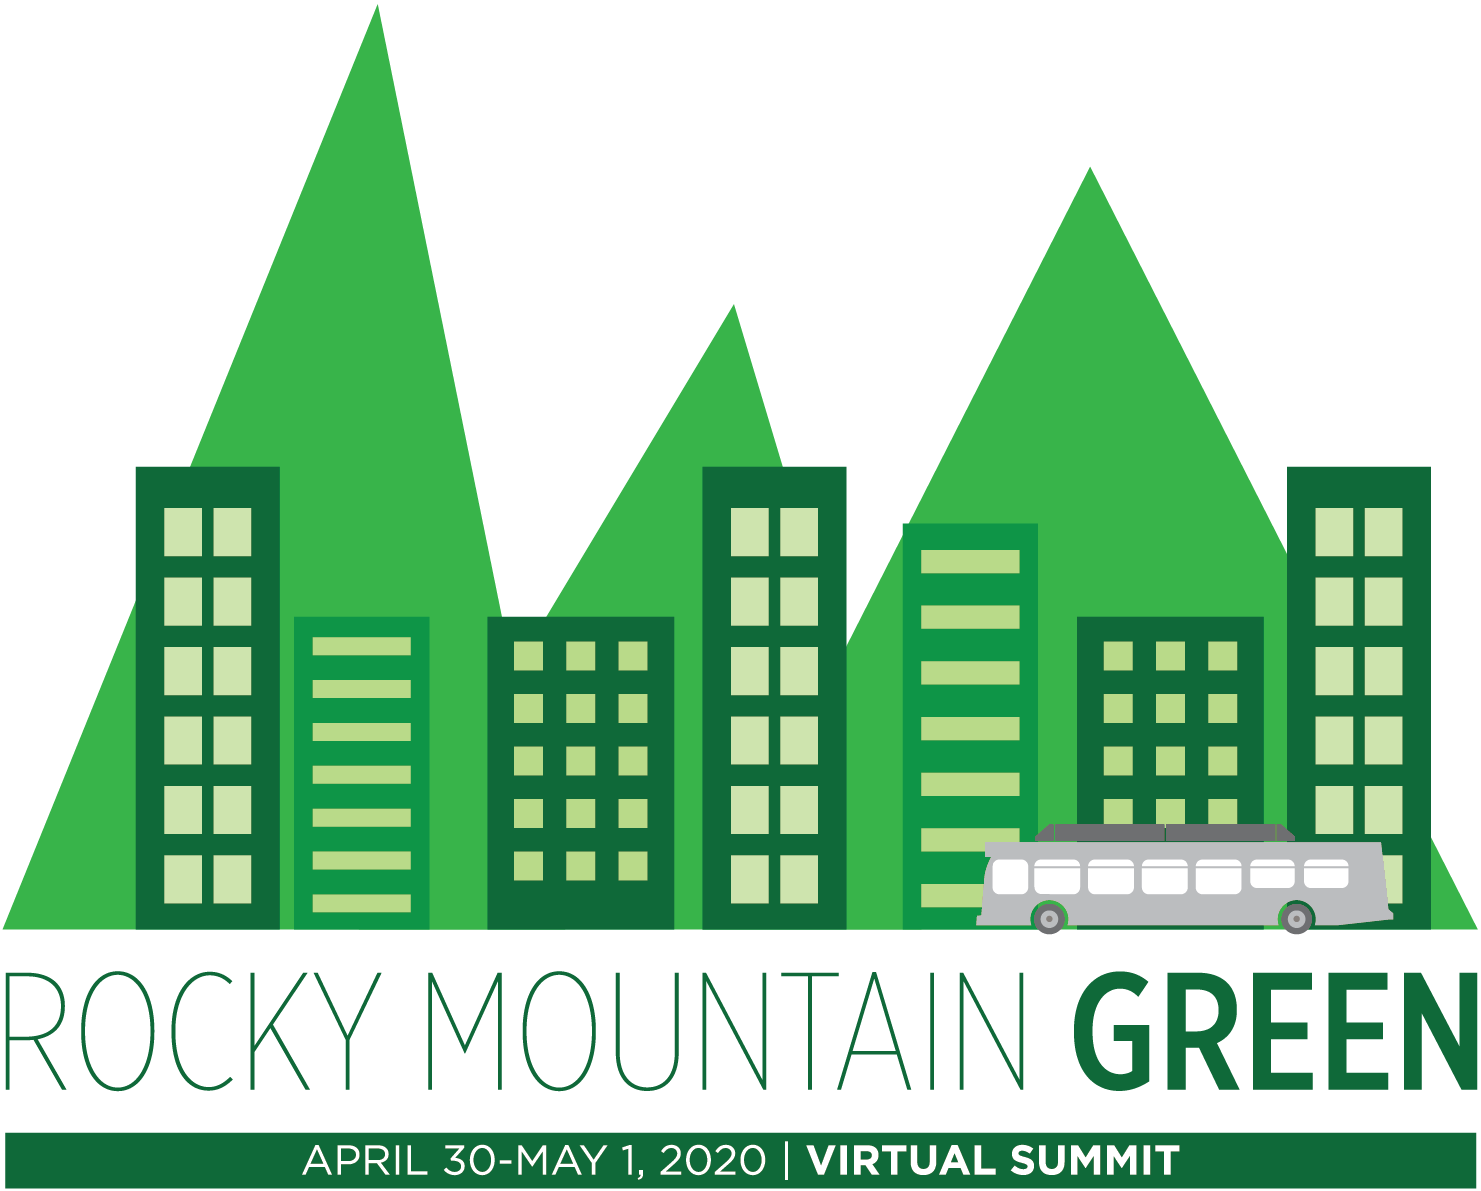 ROCKY MOUNTAIN GREEN | Denver, Co